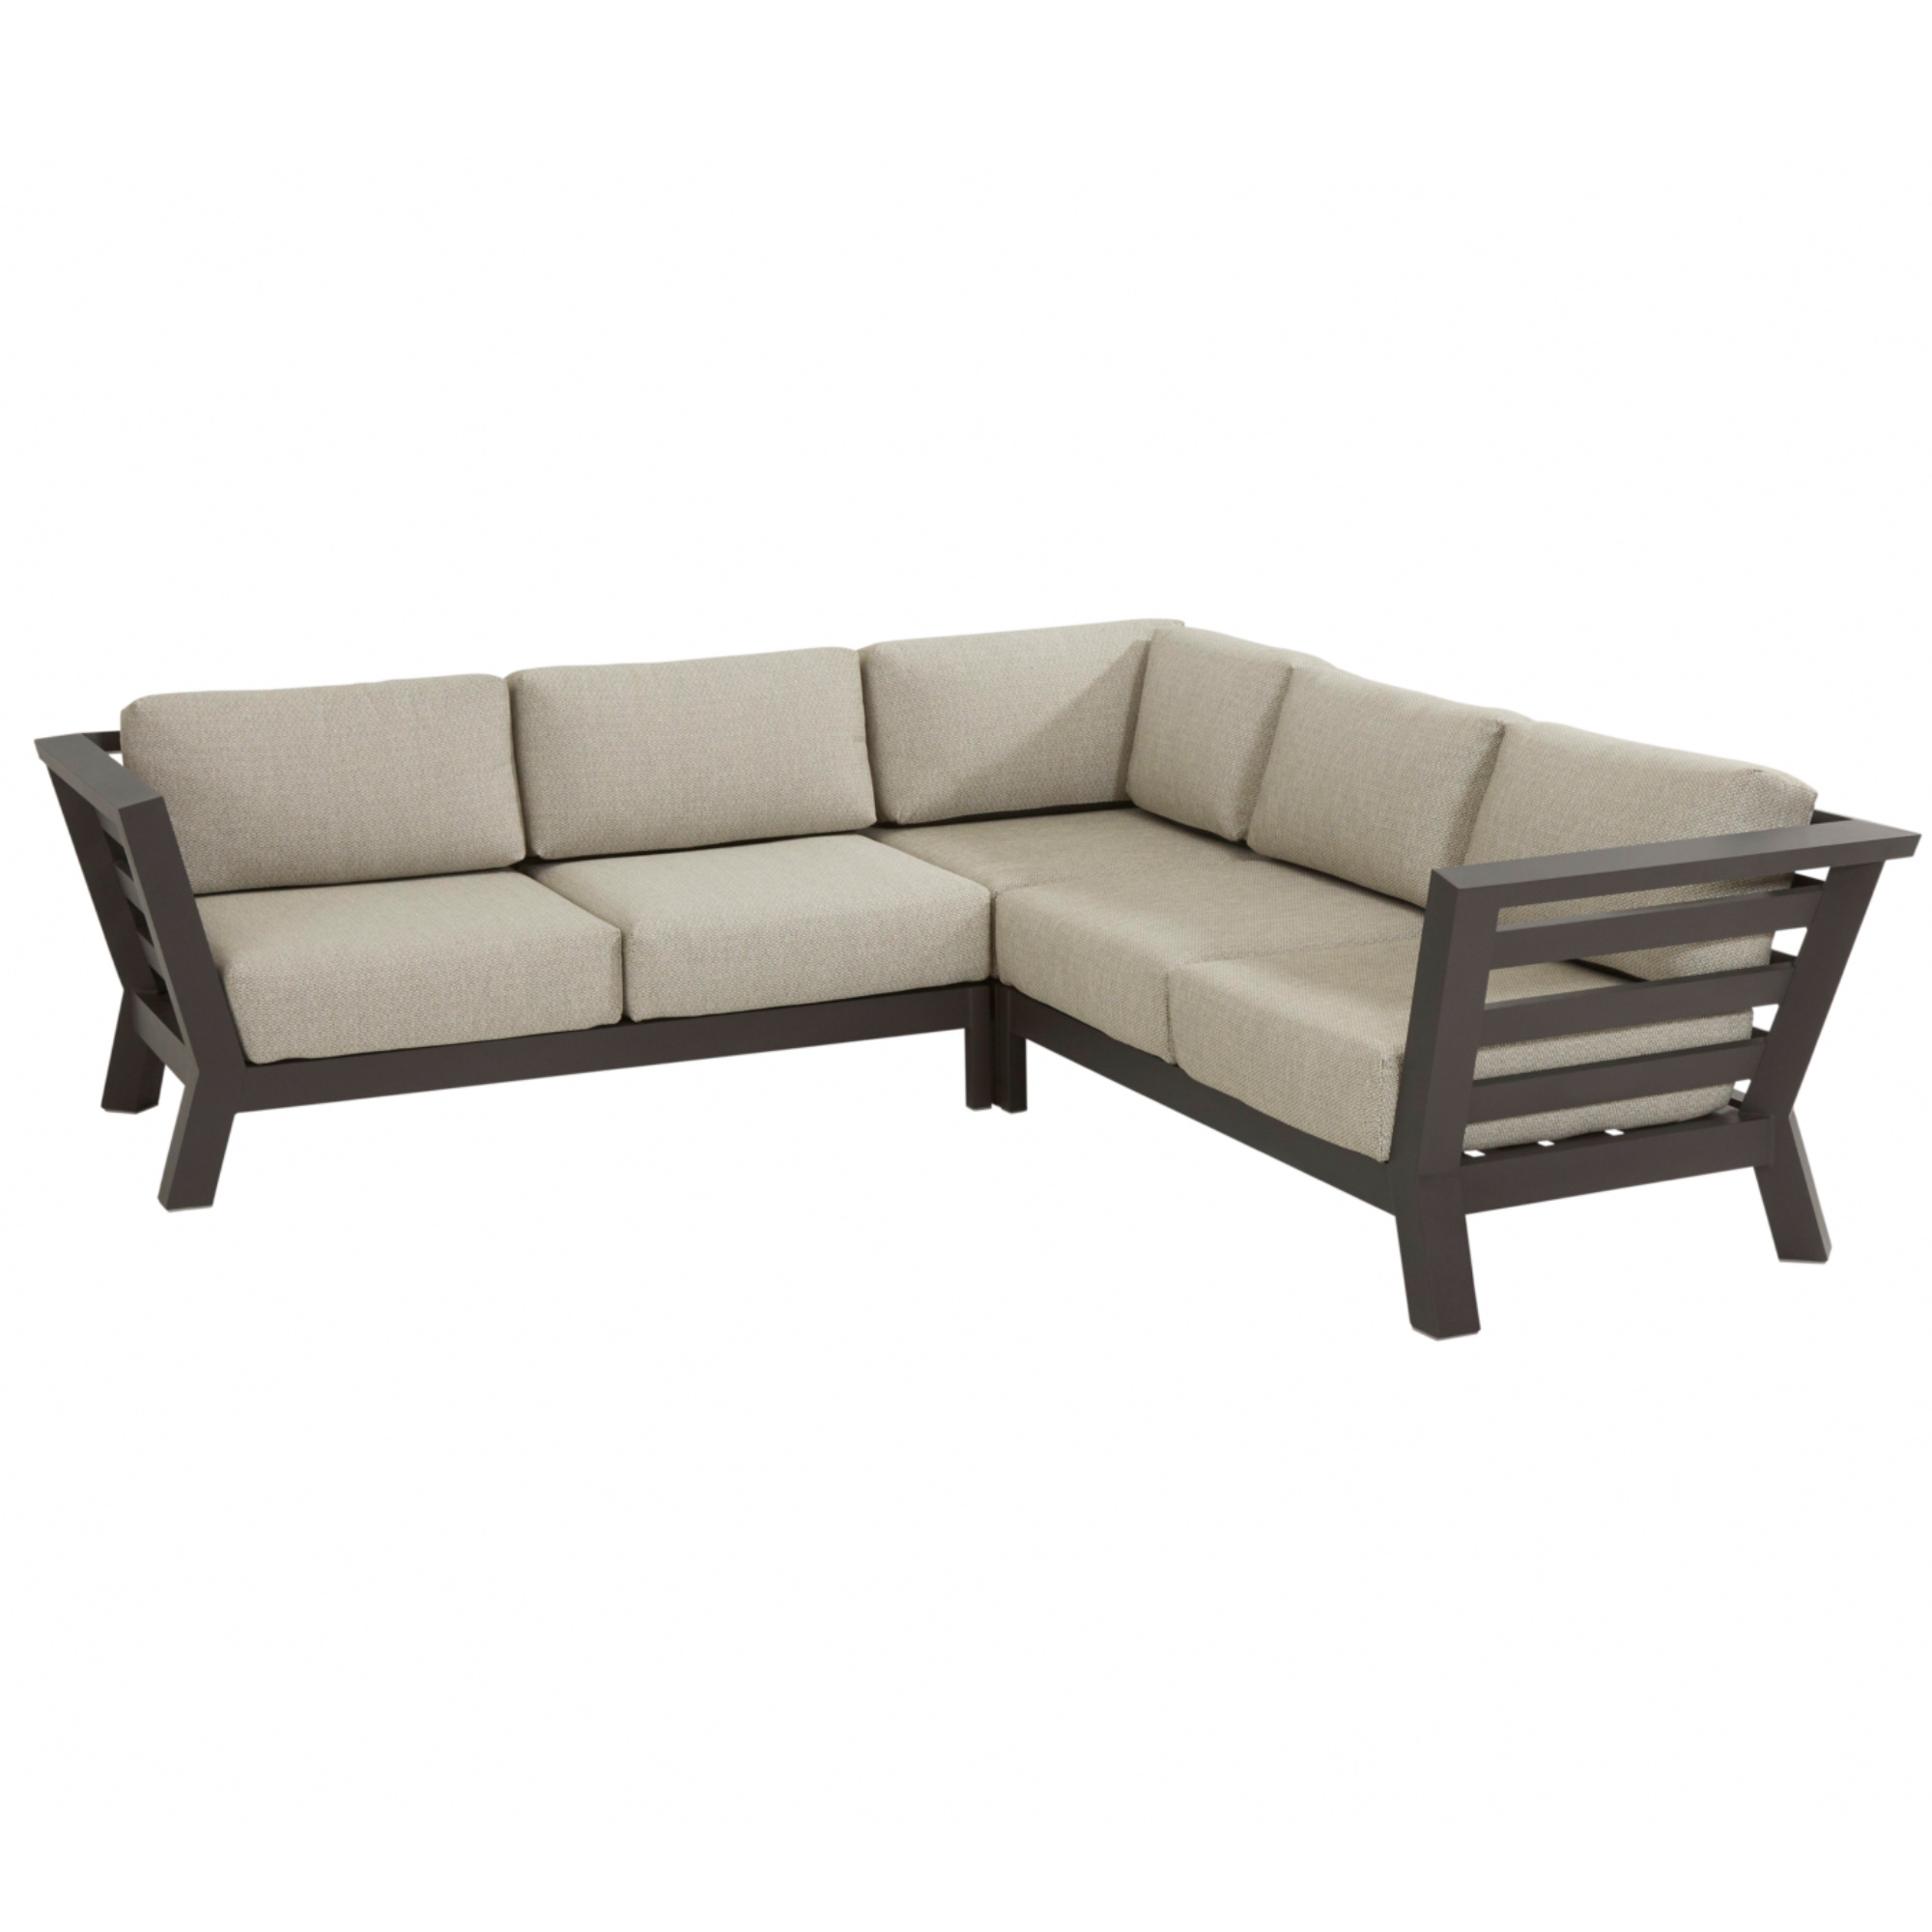 4 Seasons Outdoor Meteor loungeset